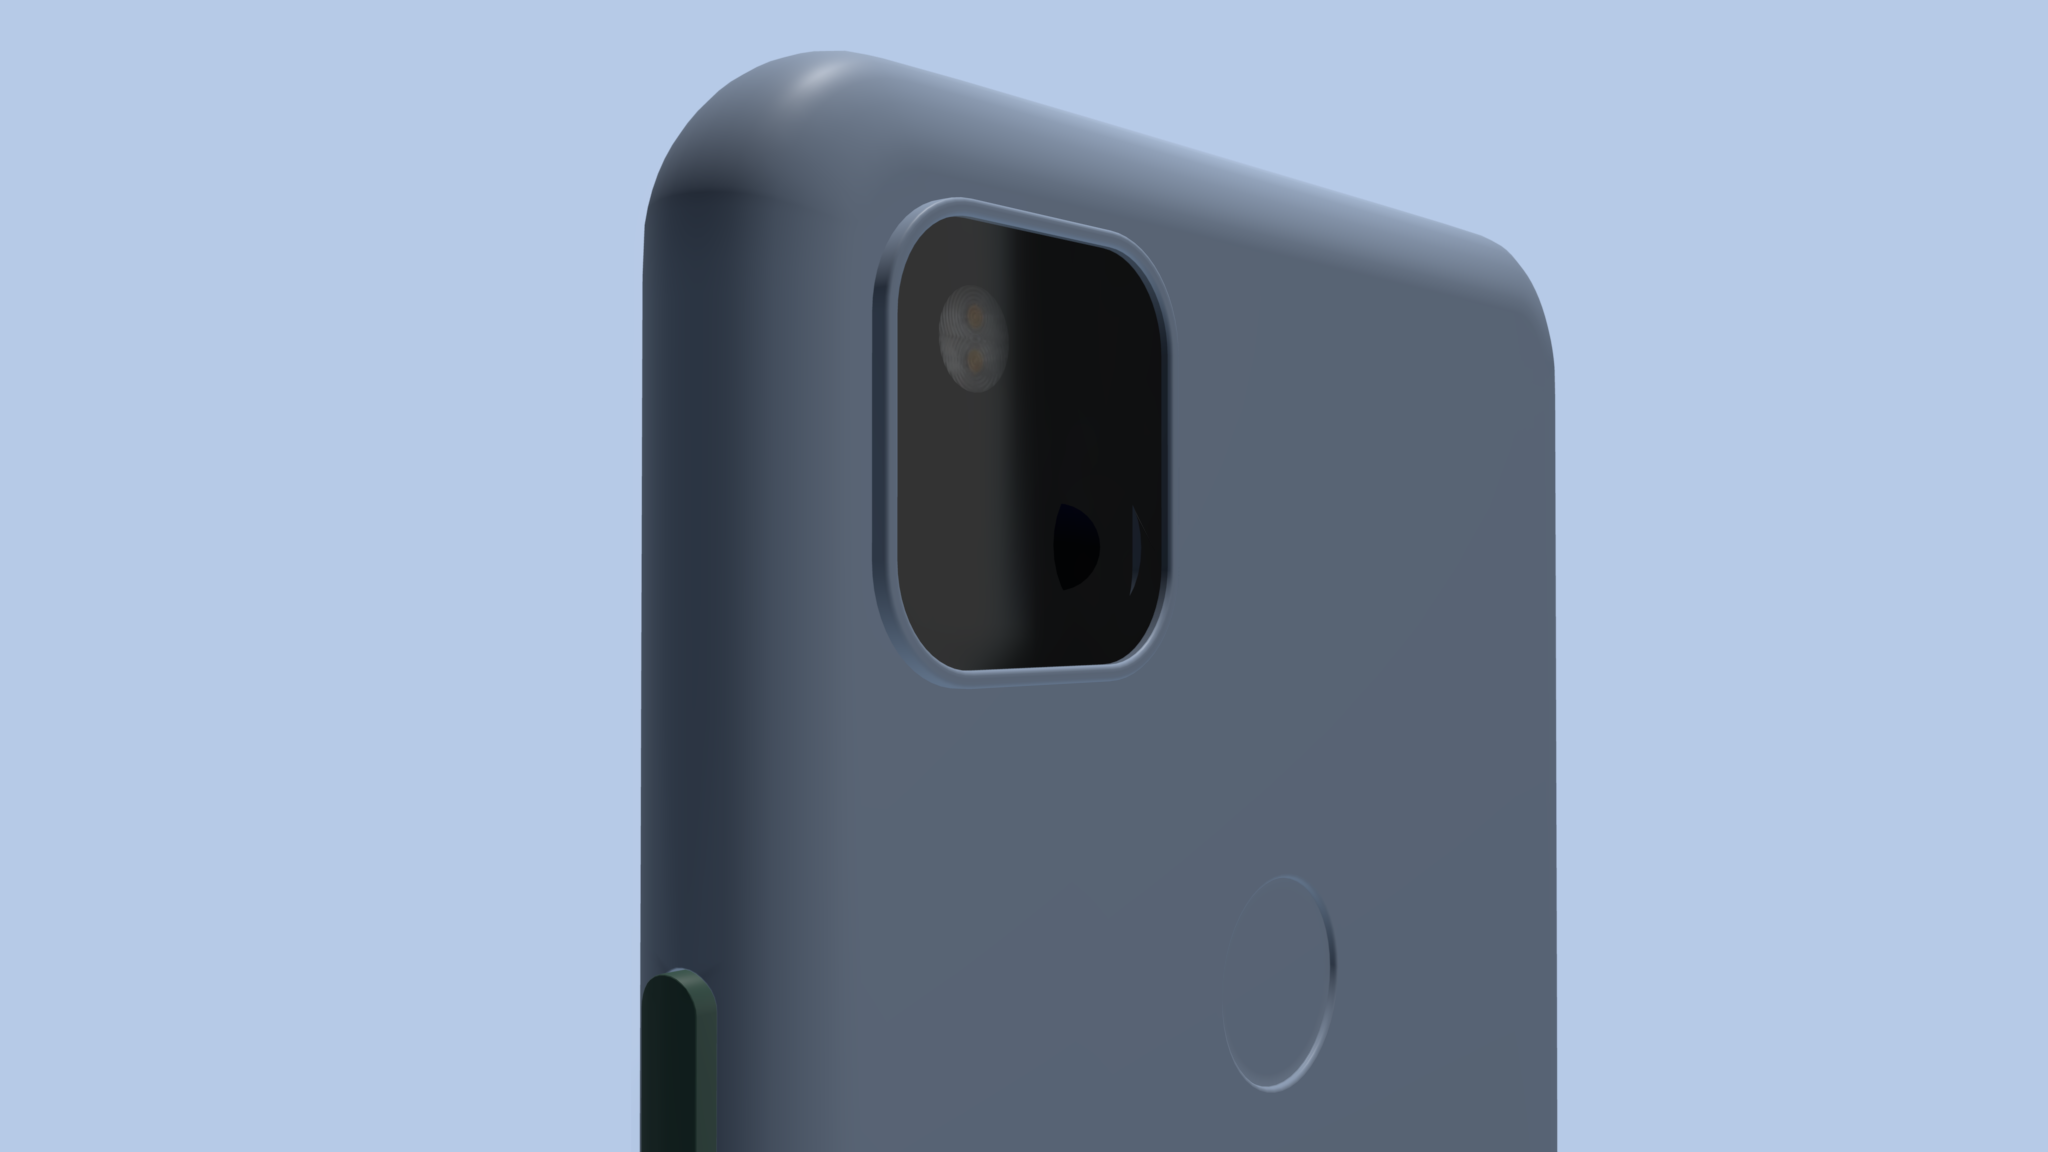 Back view of pixel mockup